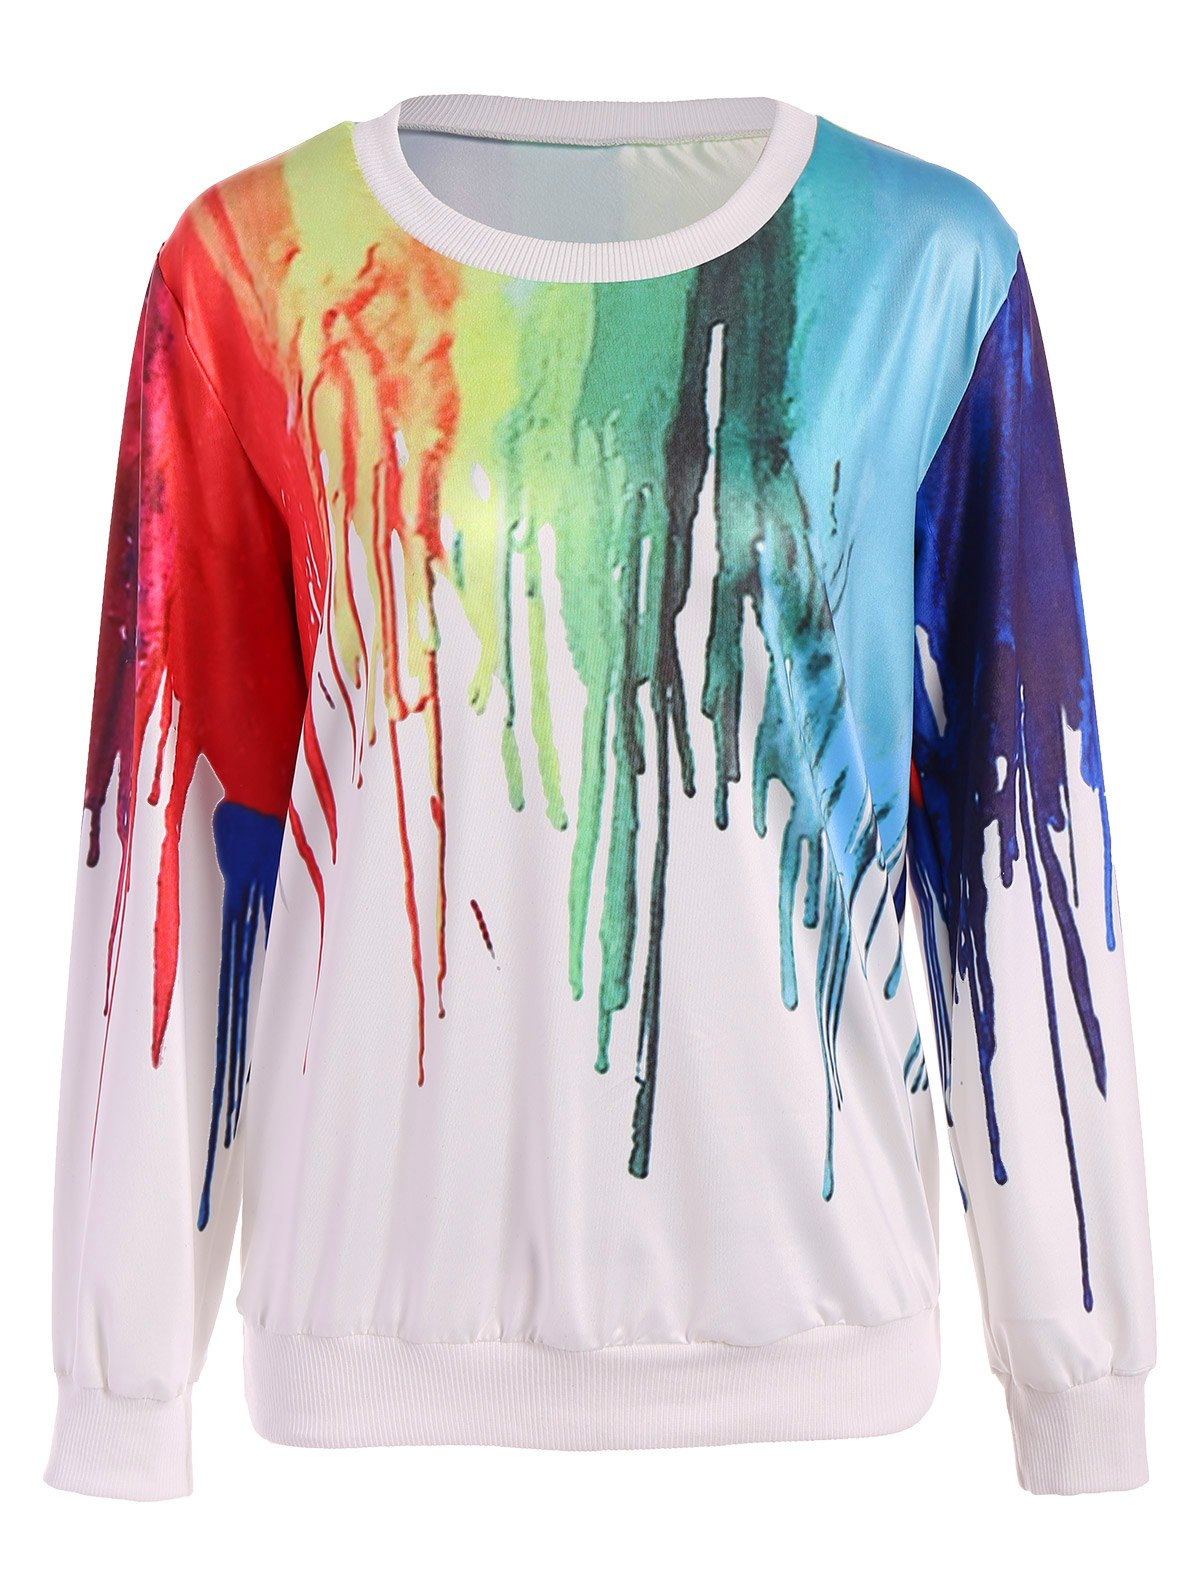 Splatter Paint Loose Sweatshirt